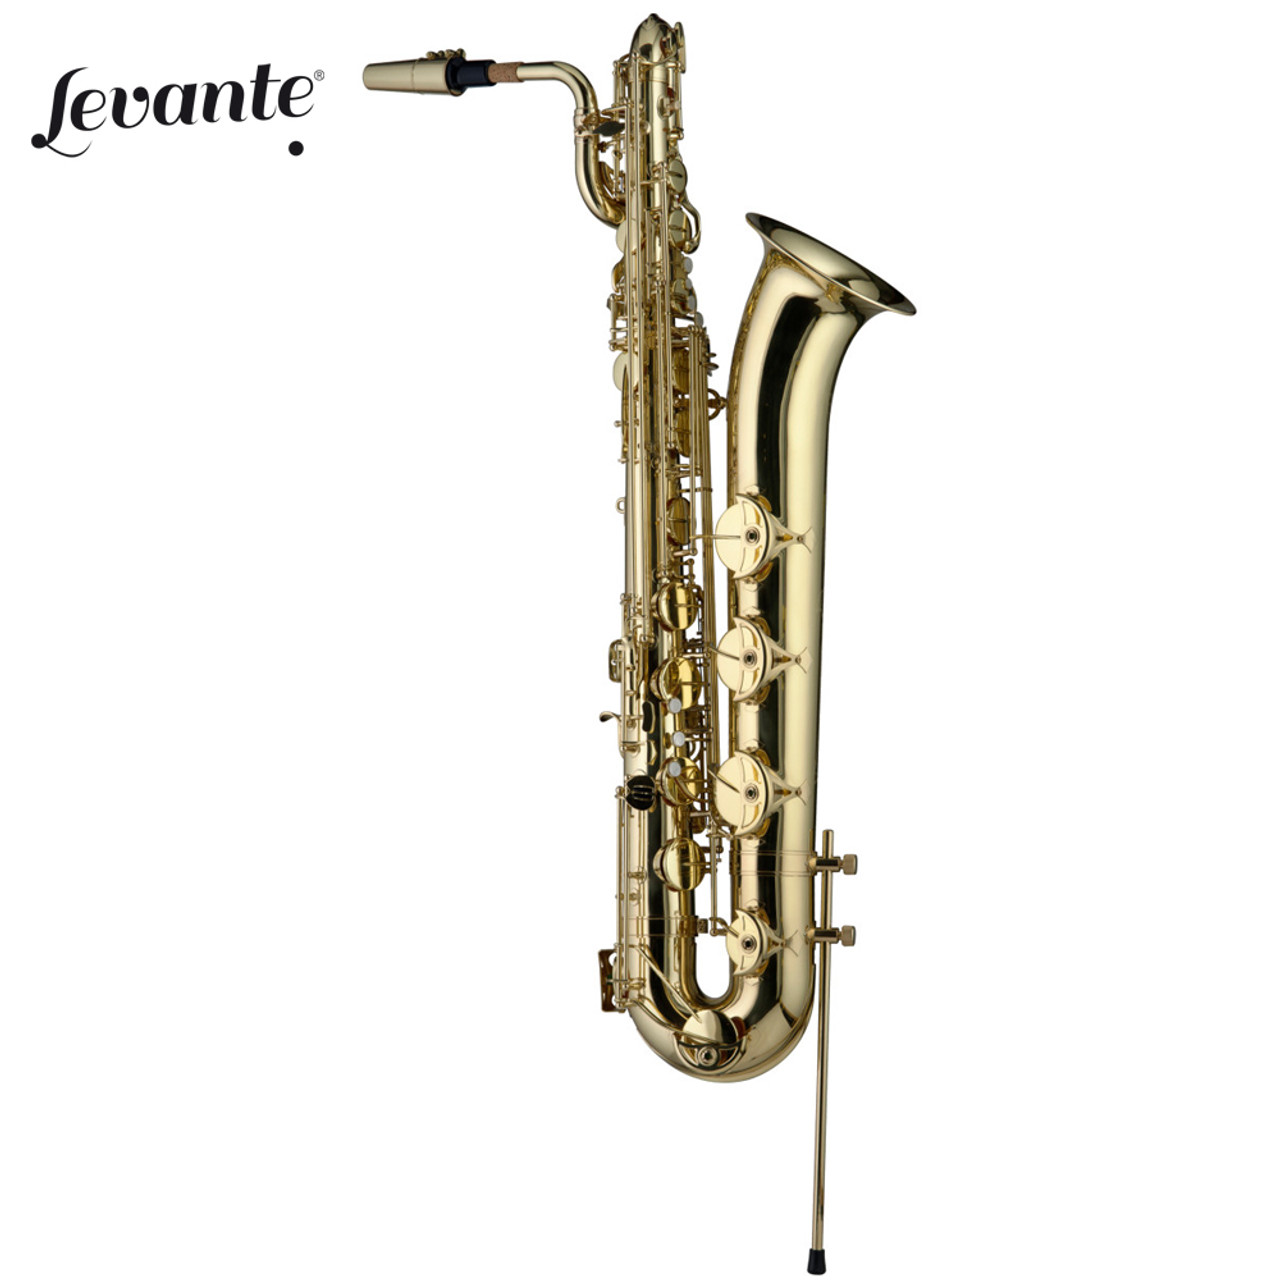 New Levante Lv-bs5605 Pro 3-valve Bb Baritone Horn Clear Lacquer With Soft Case Musical Instruments & Gear Baritones